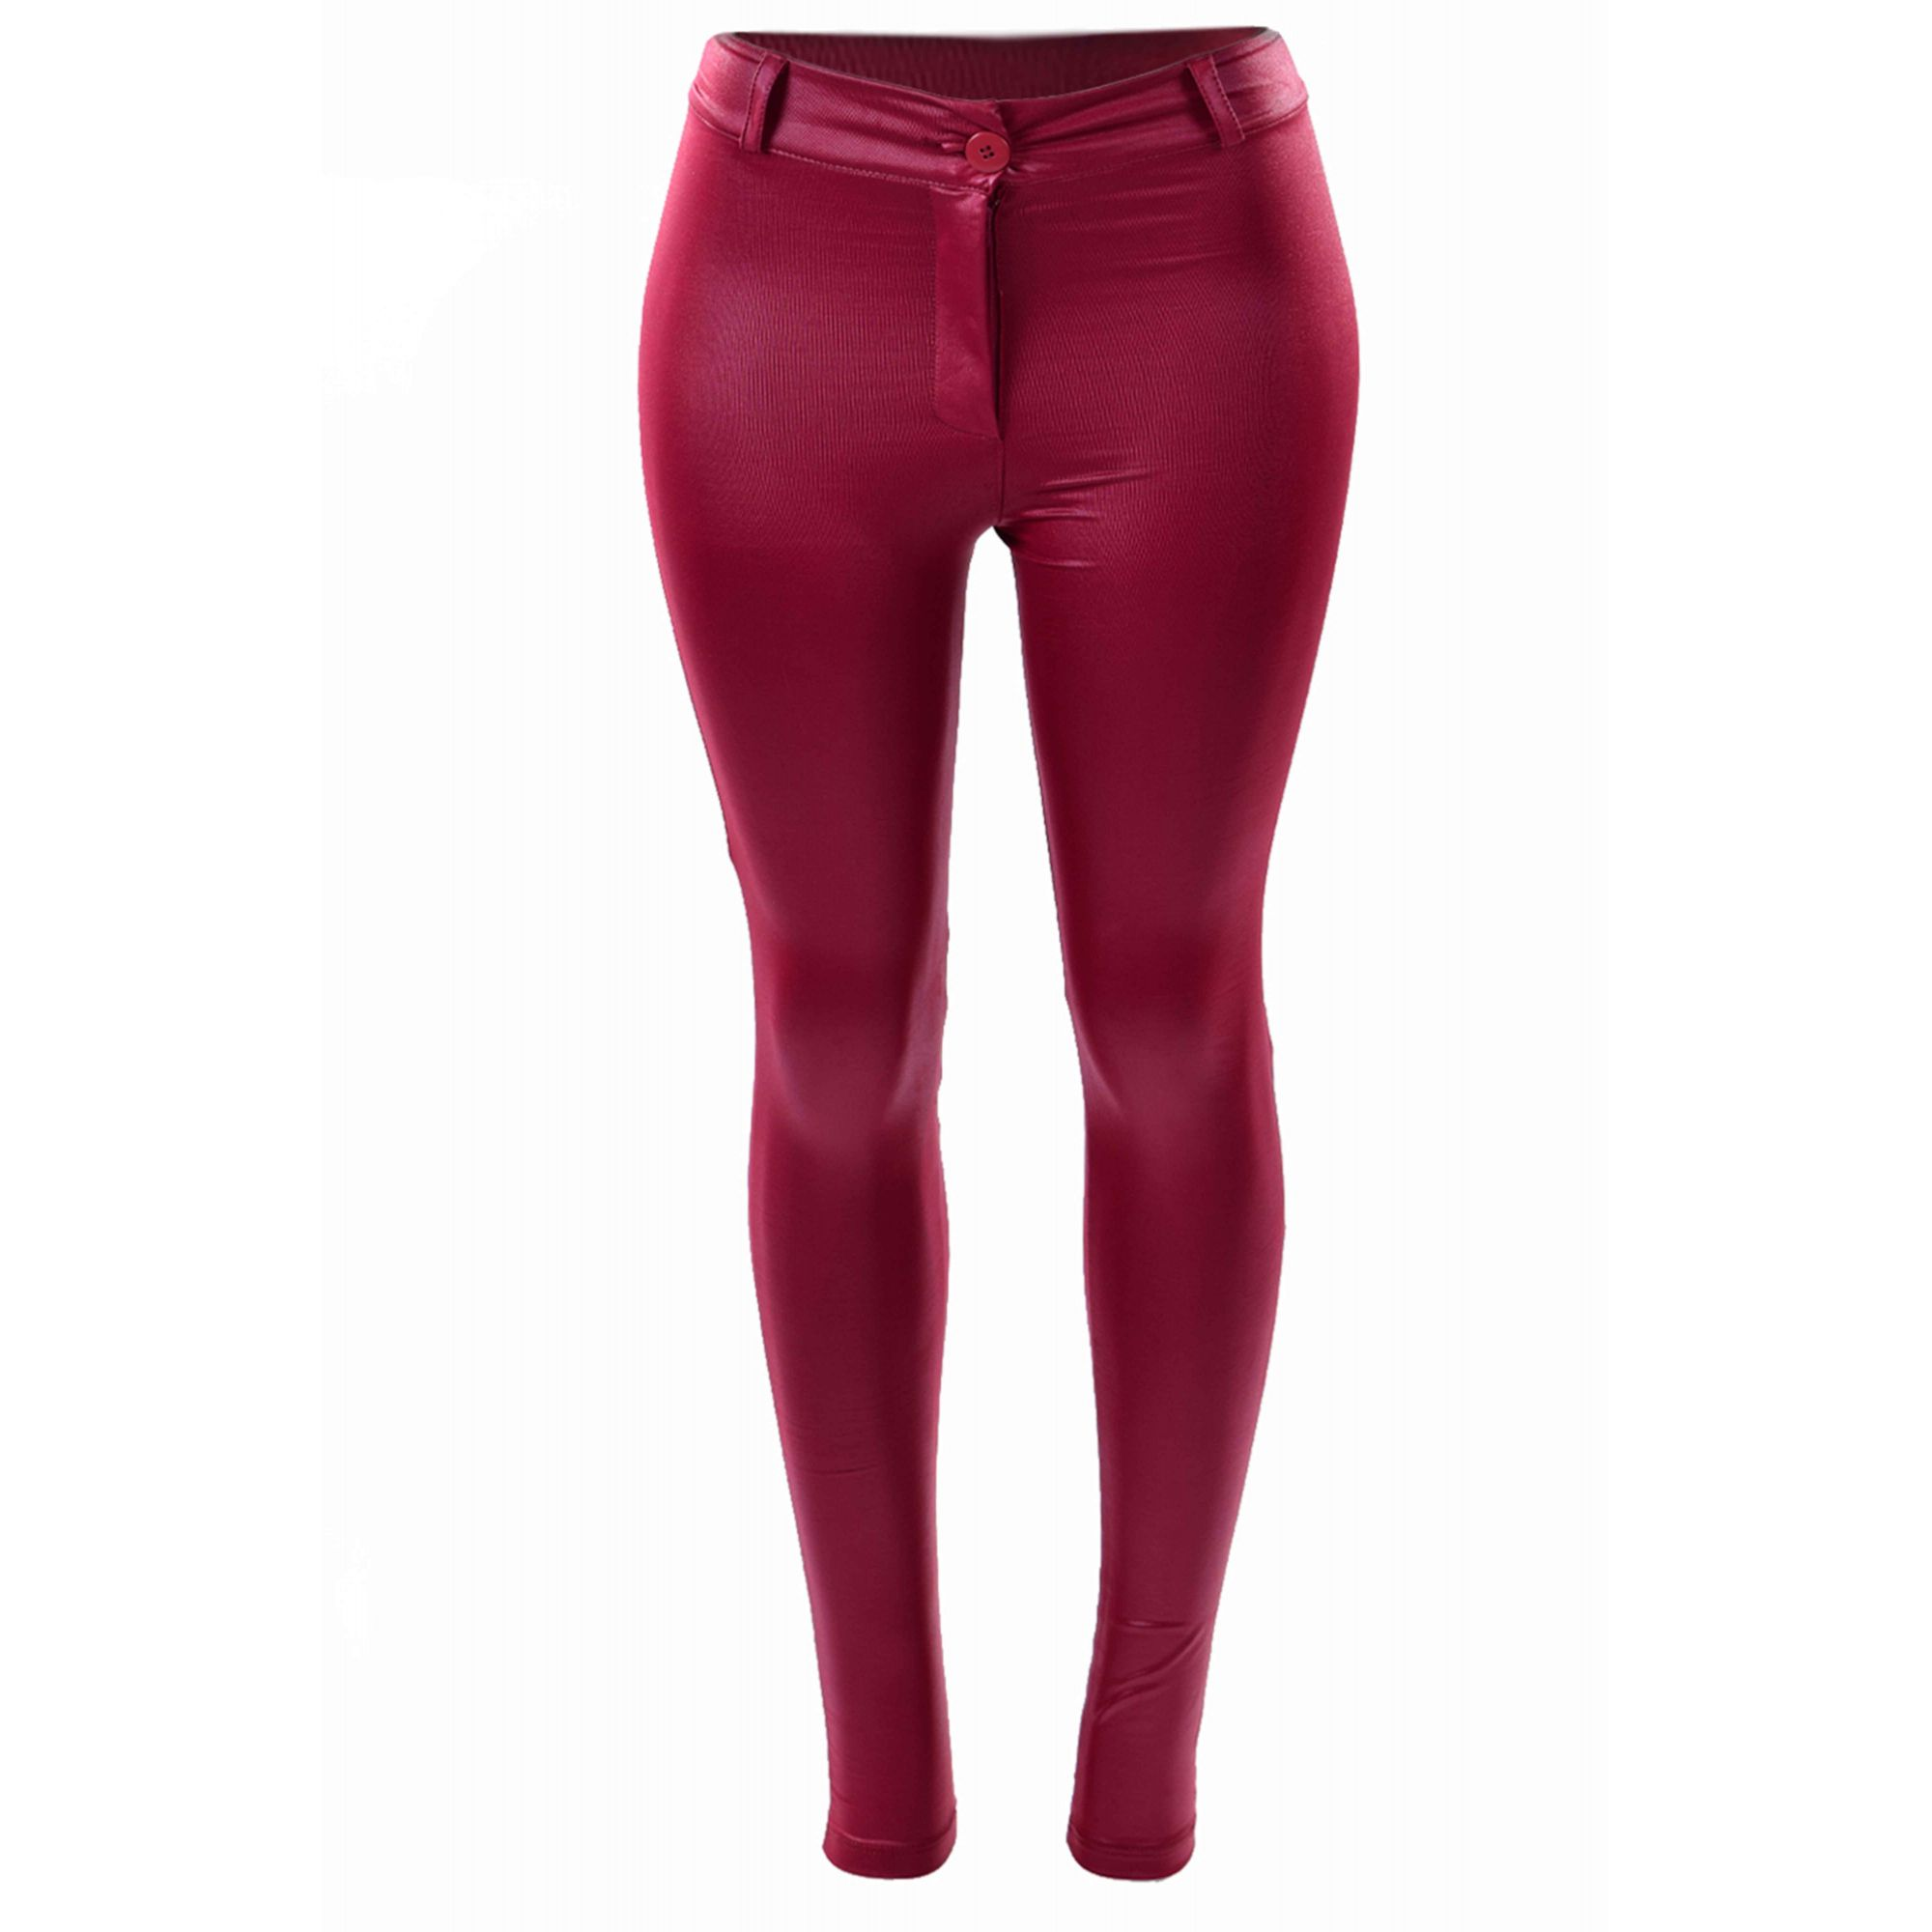 fdb5bd6e0d Legging OutletDri Cirre Bordô Outlet Dri